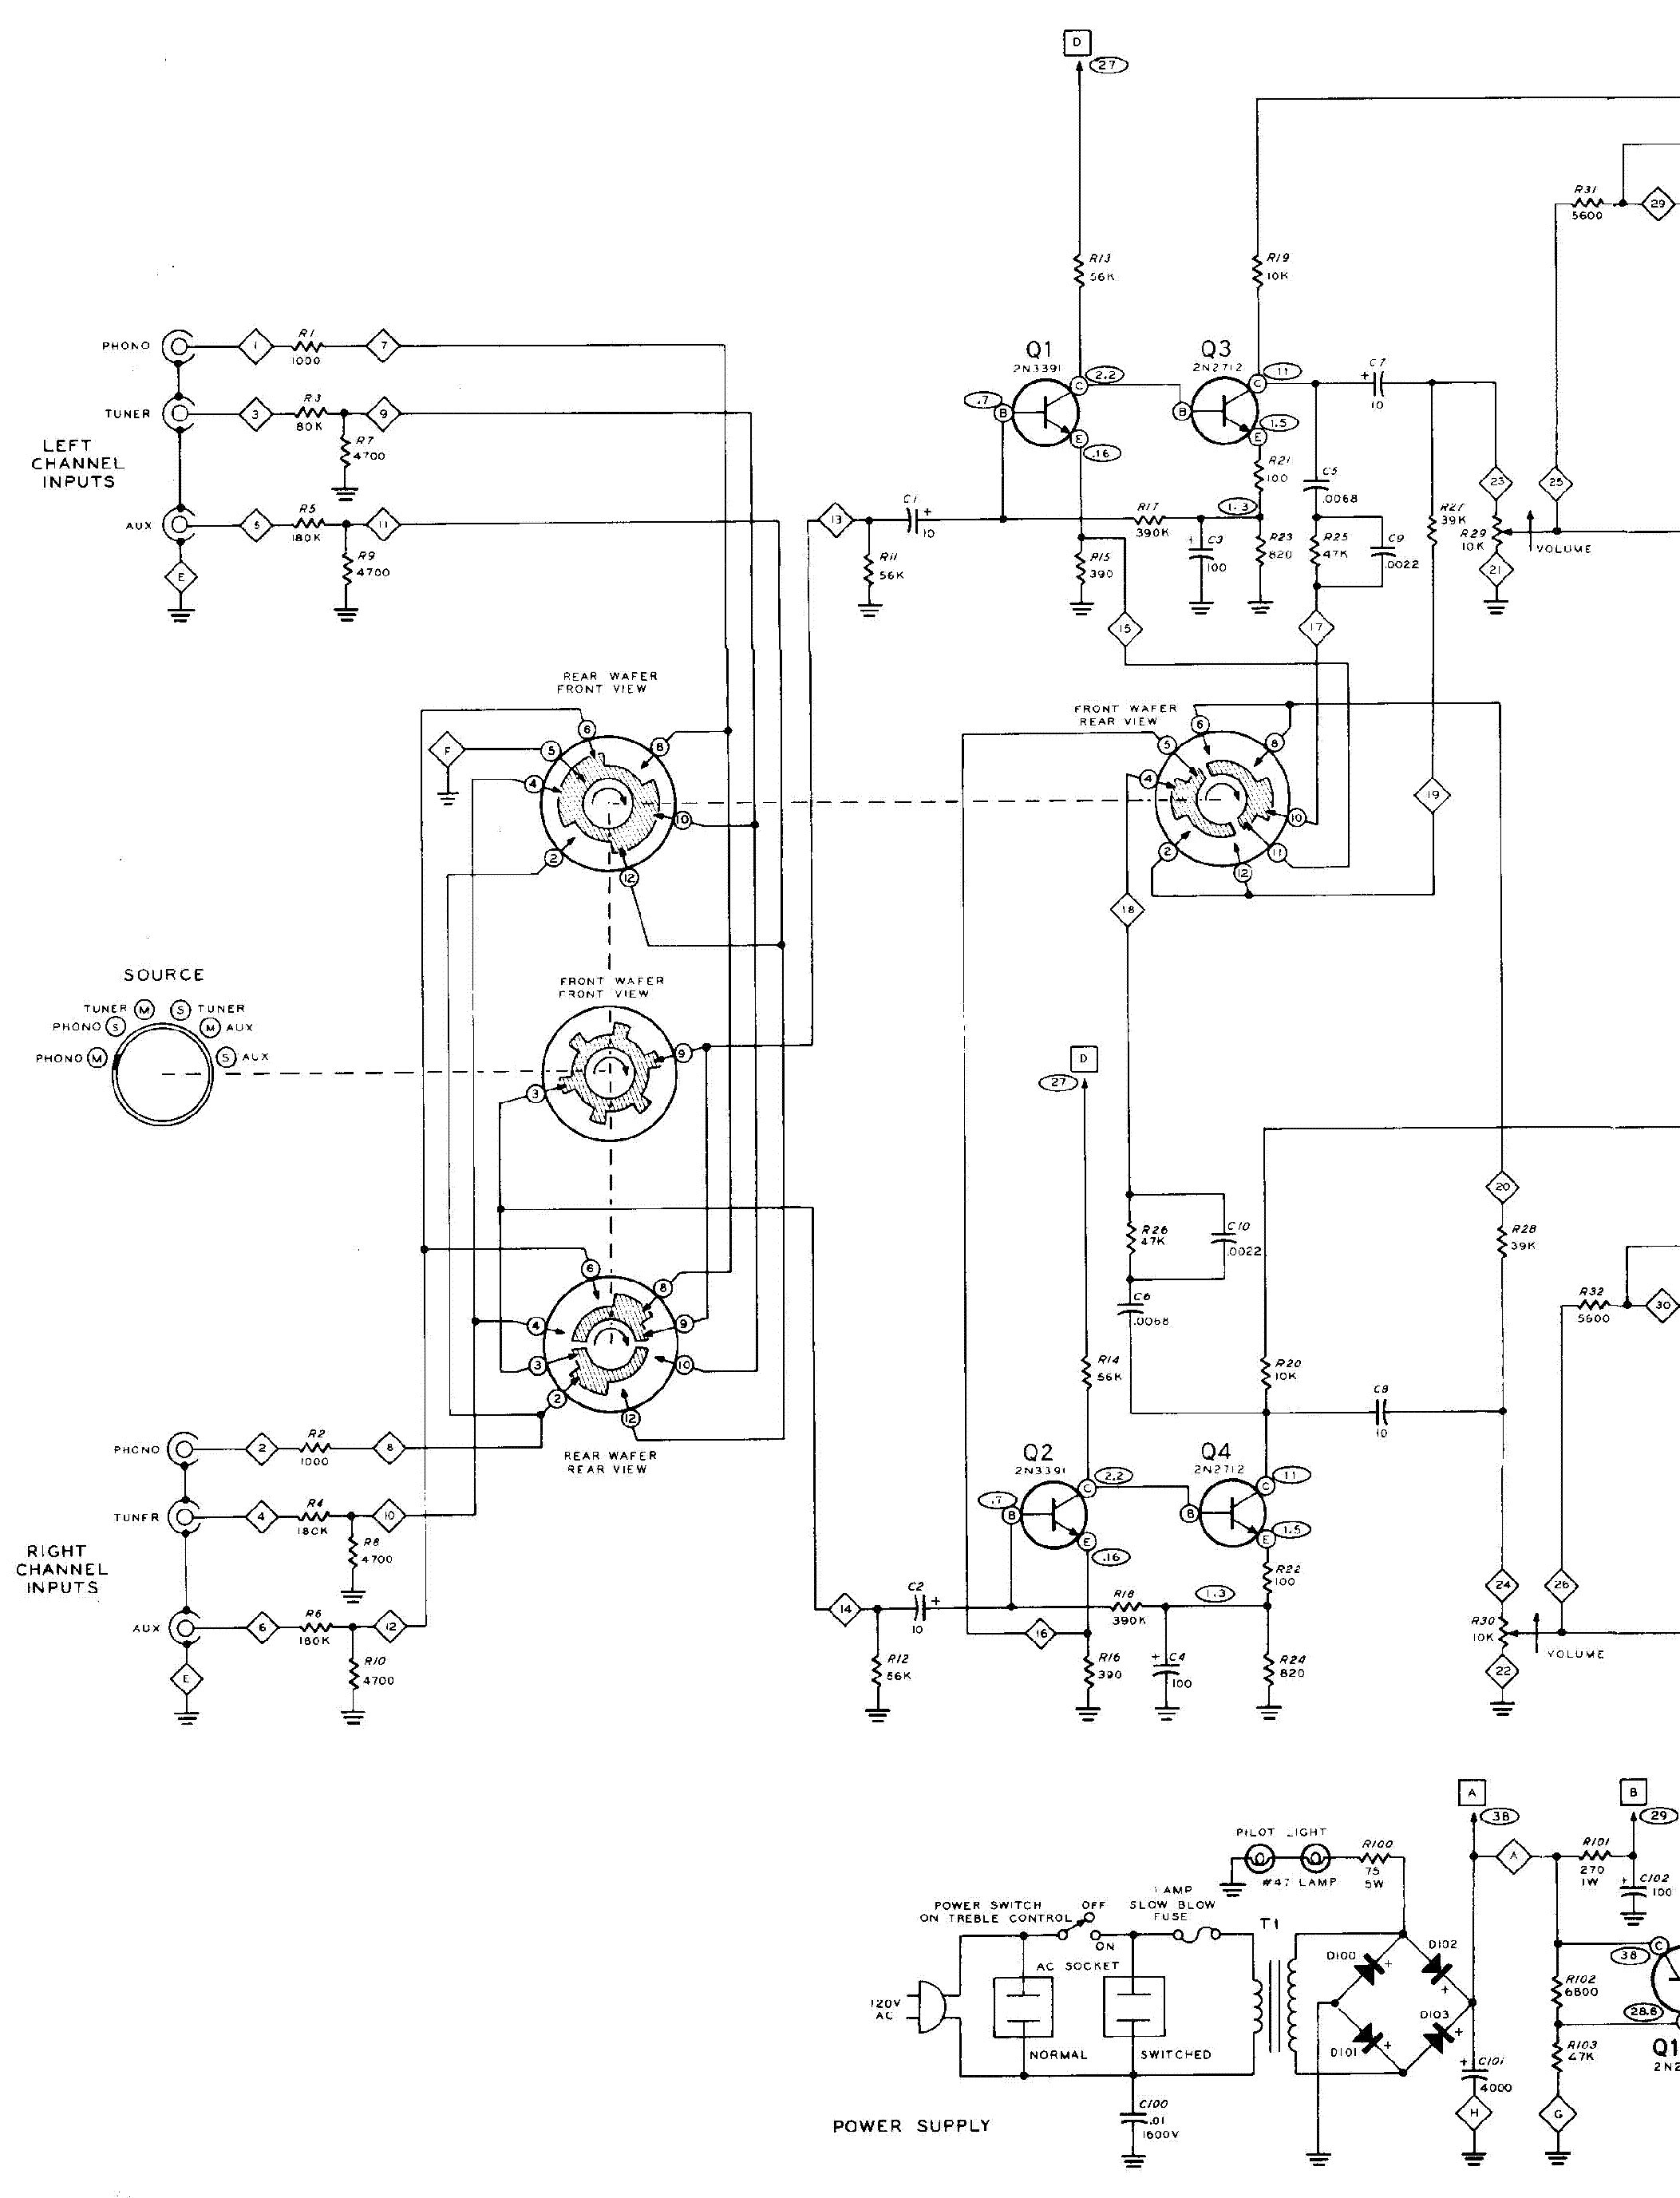 heathkit aa14 20w solid state stereo amplifier sm service manual download  schematics  eeprom